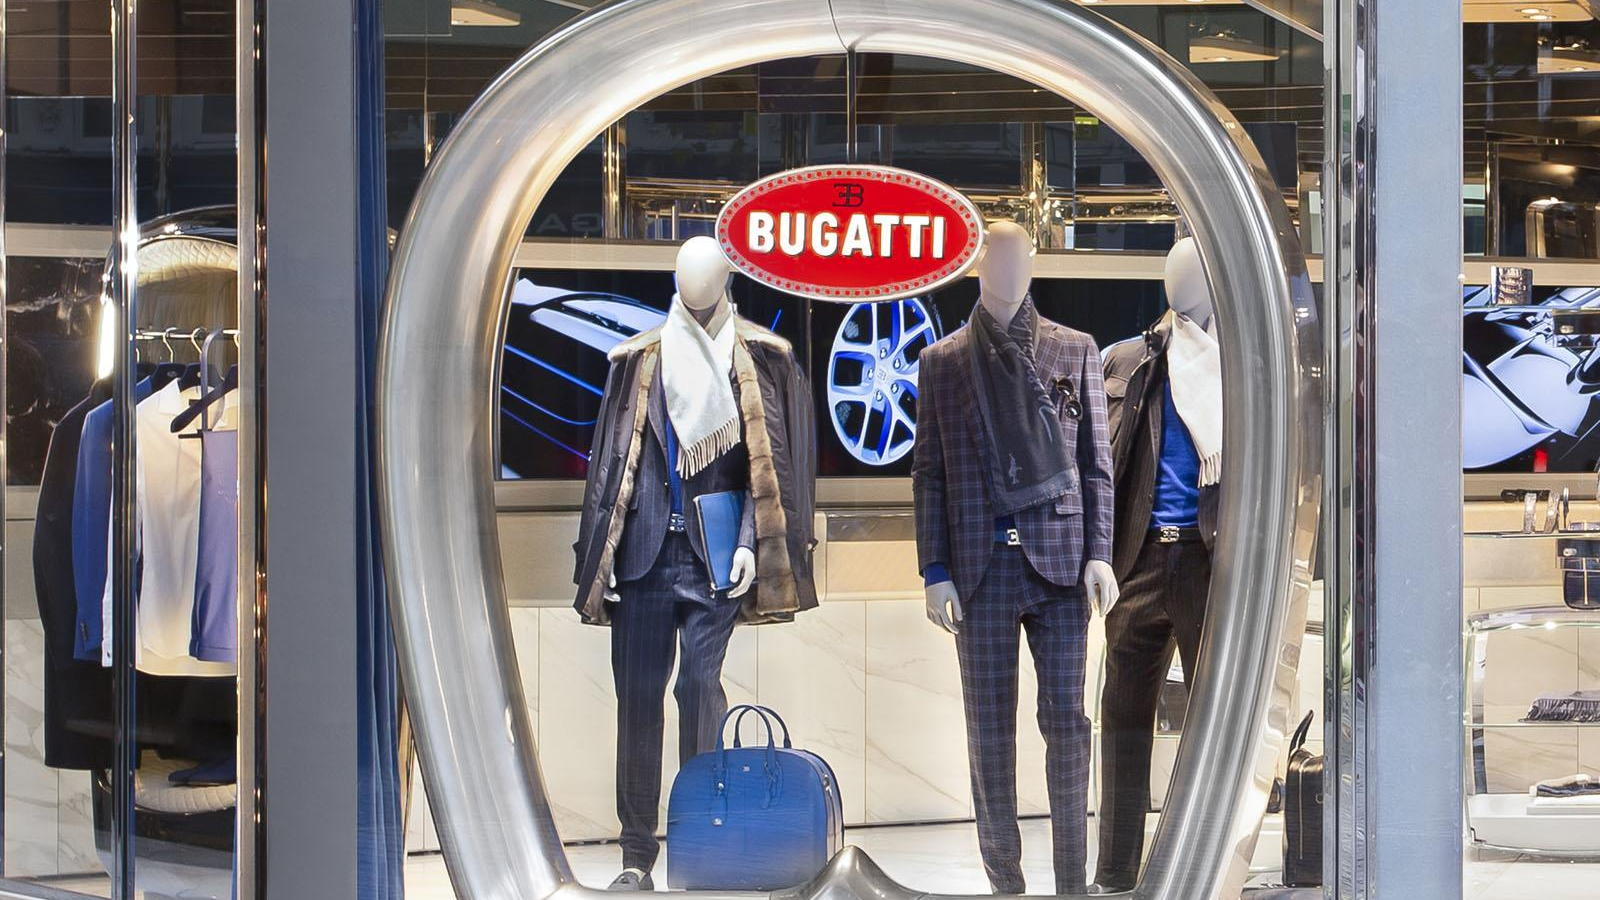 Bugatti lifestyle boutique, London